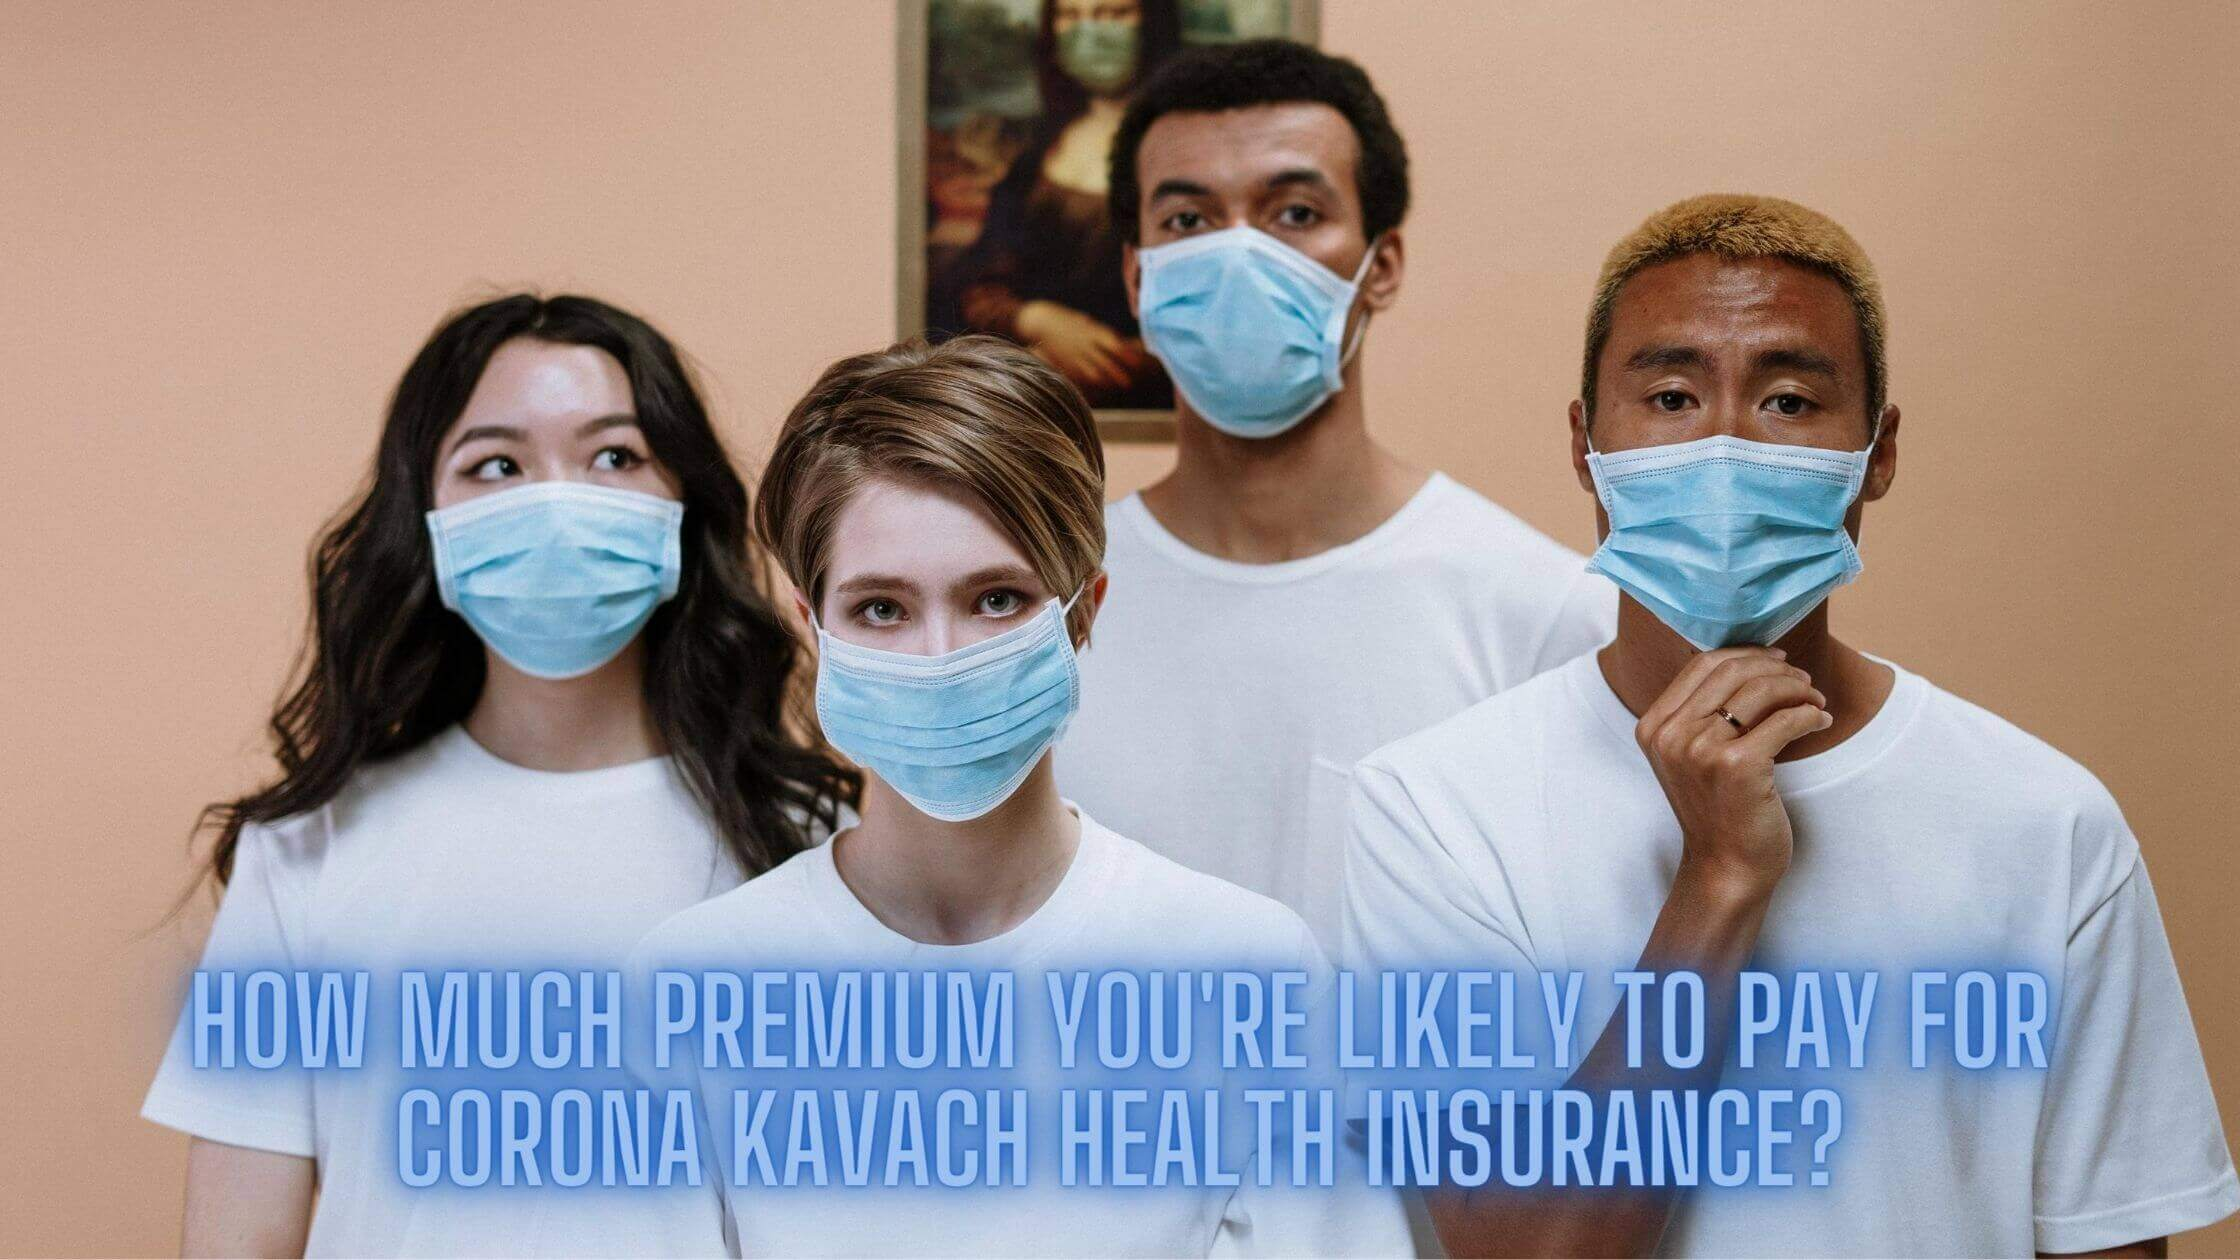 How Much Premium You're Likely to Pay for Corona Kavach Health Insurance?